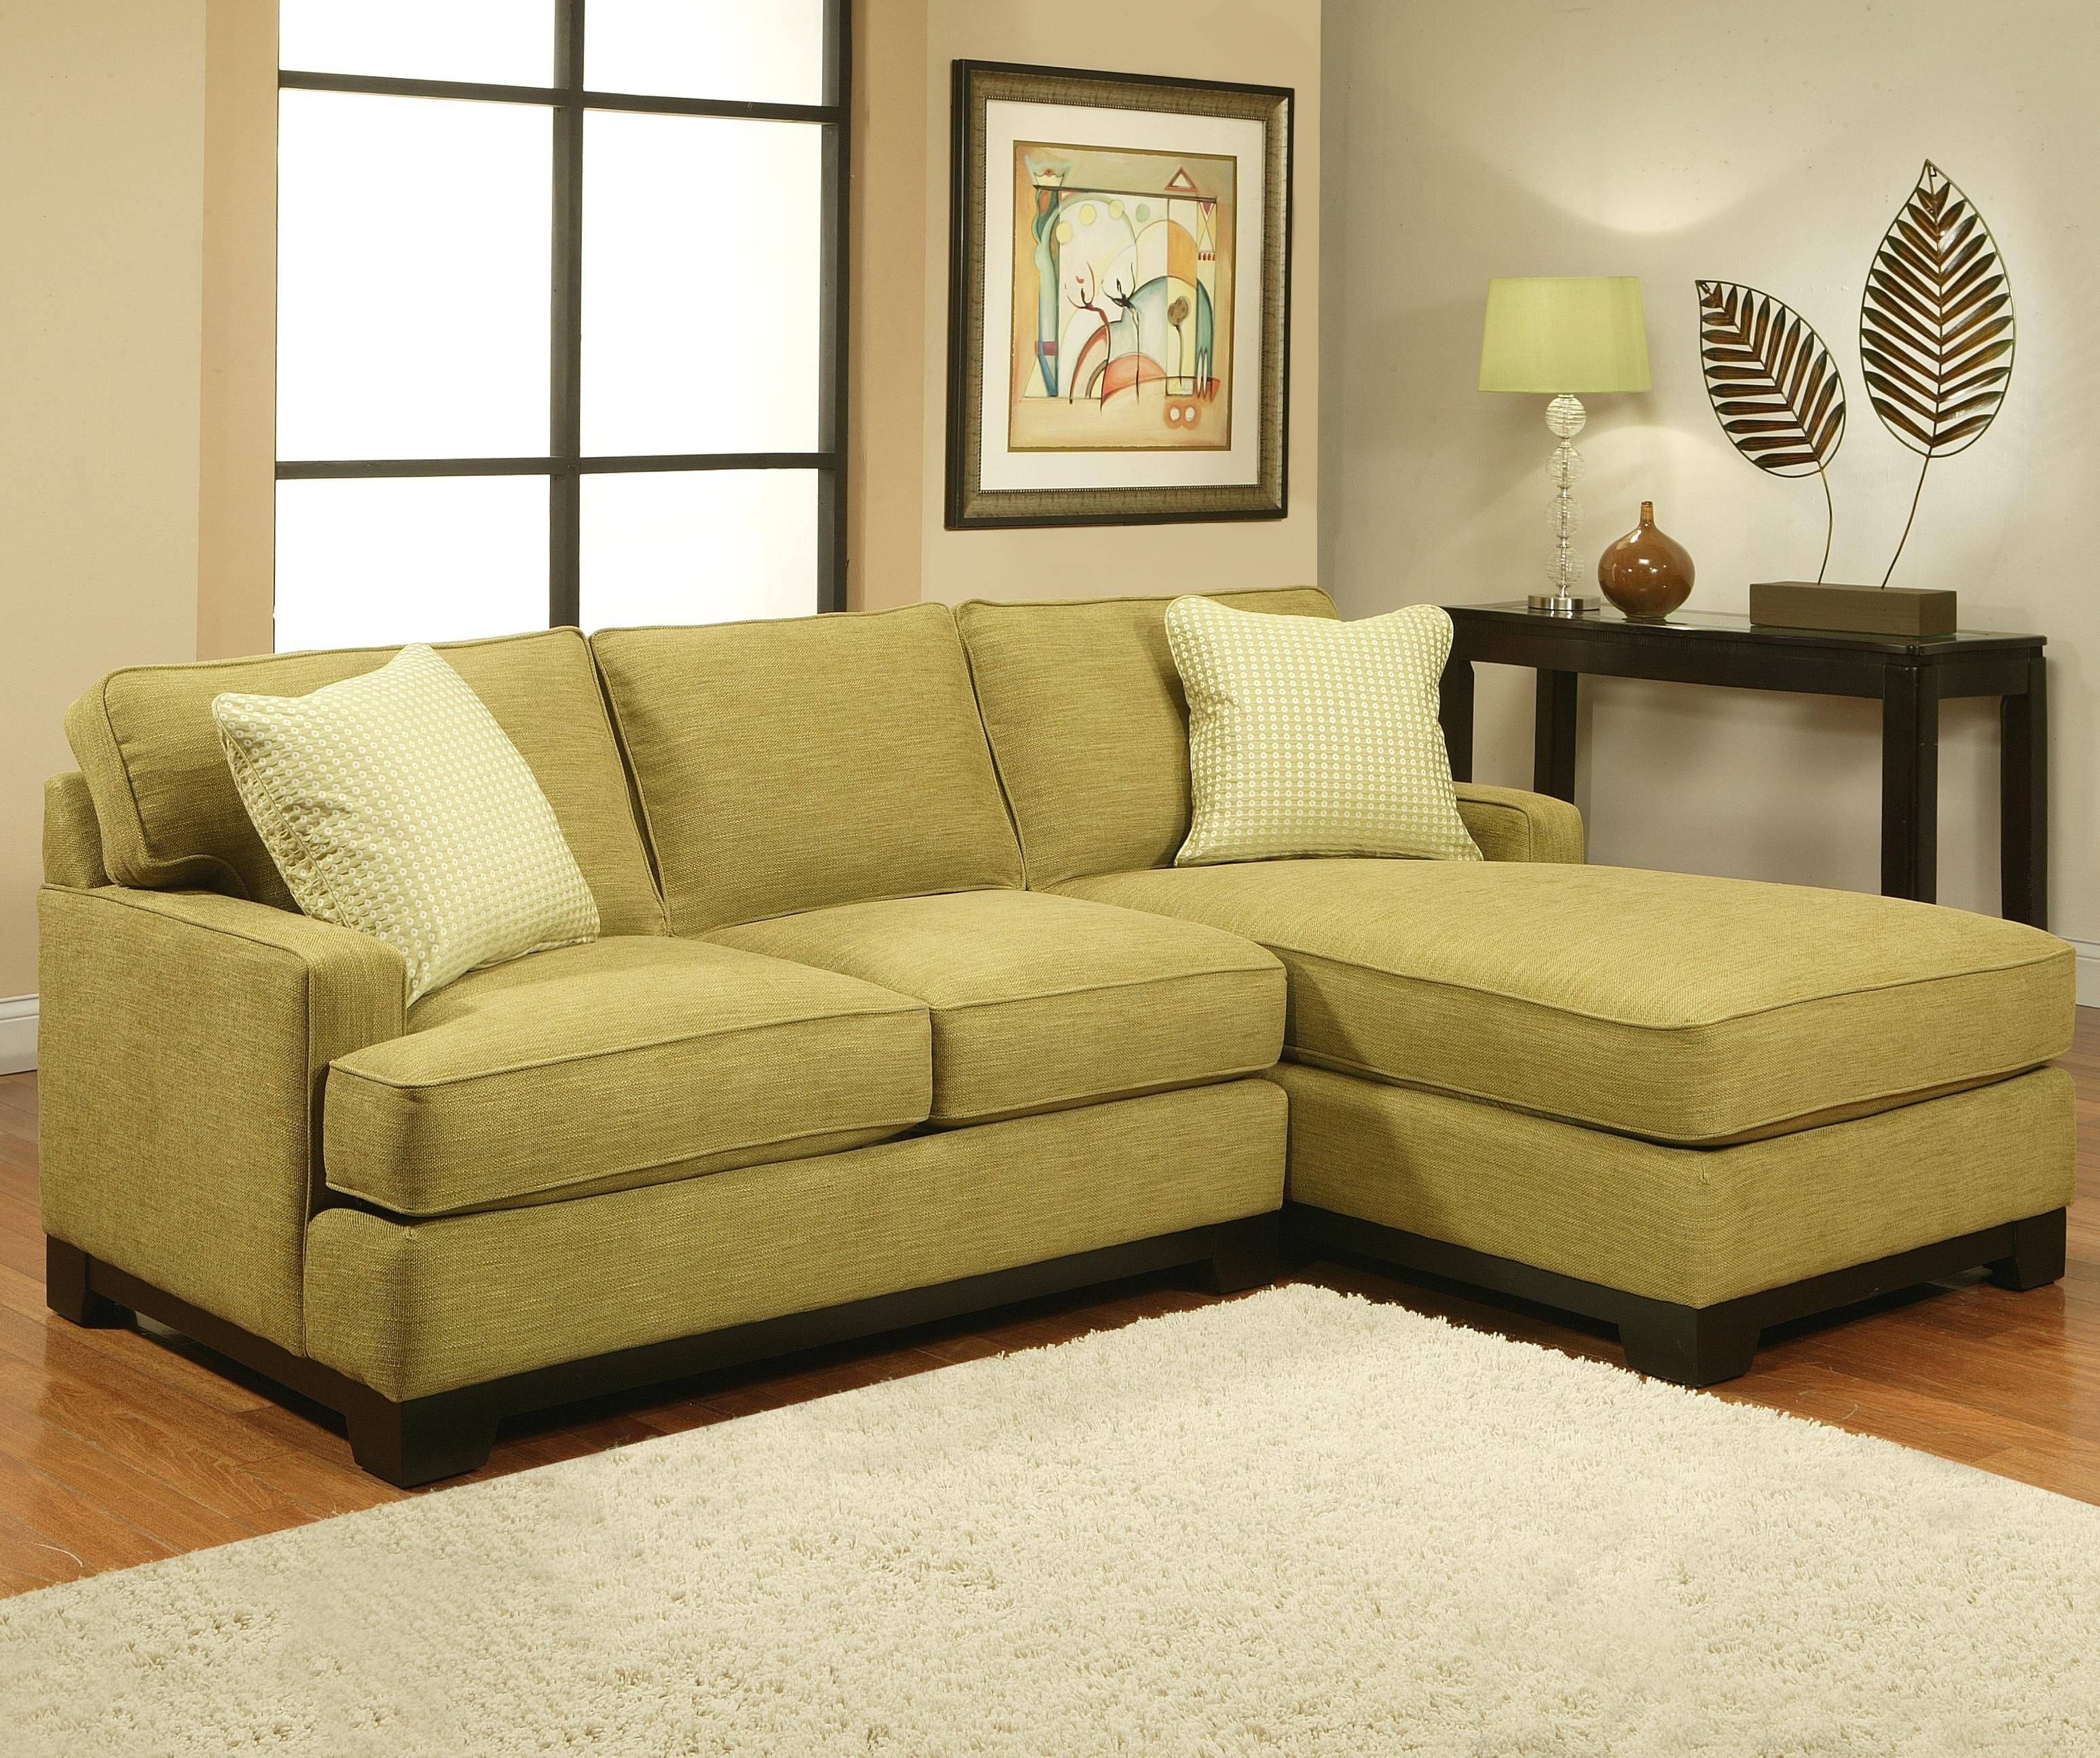 Jonathan Louis Choices - Kronos Contemporary Sectional Sofa With throughout Jonathan Sofa (Image 10 of 25)